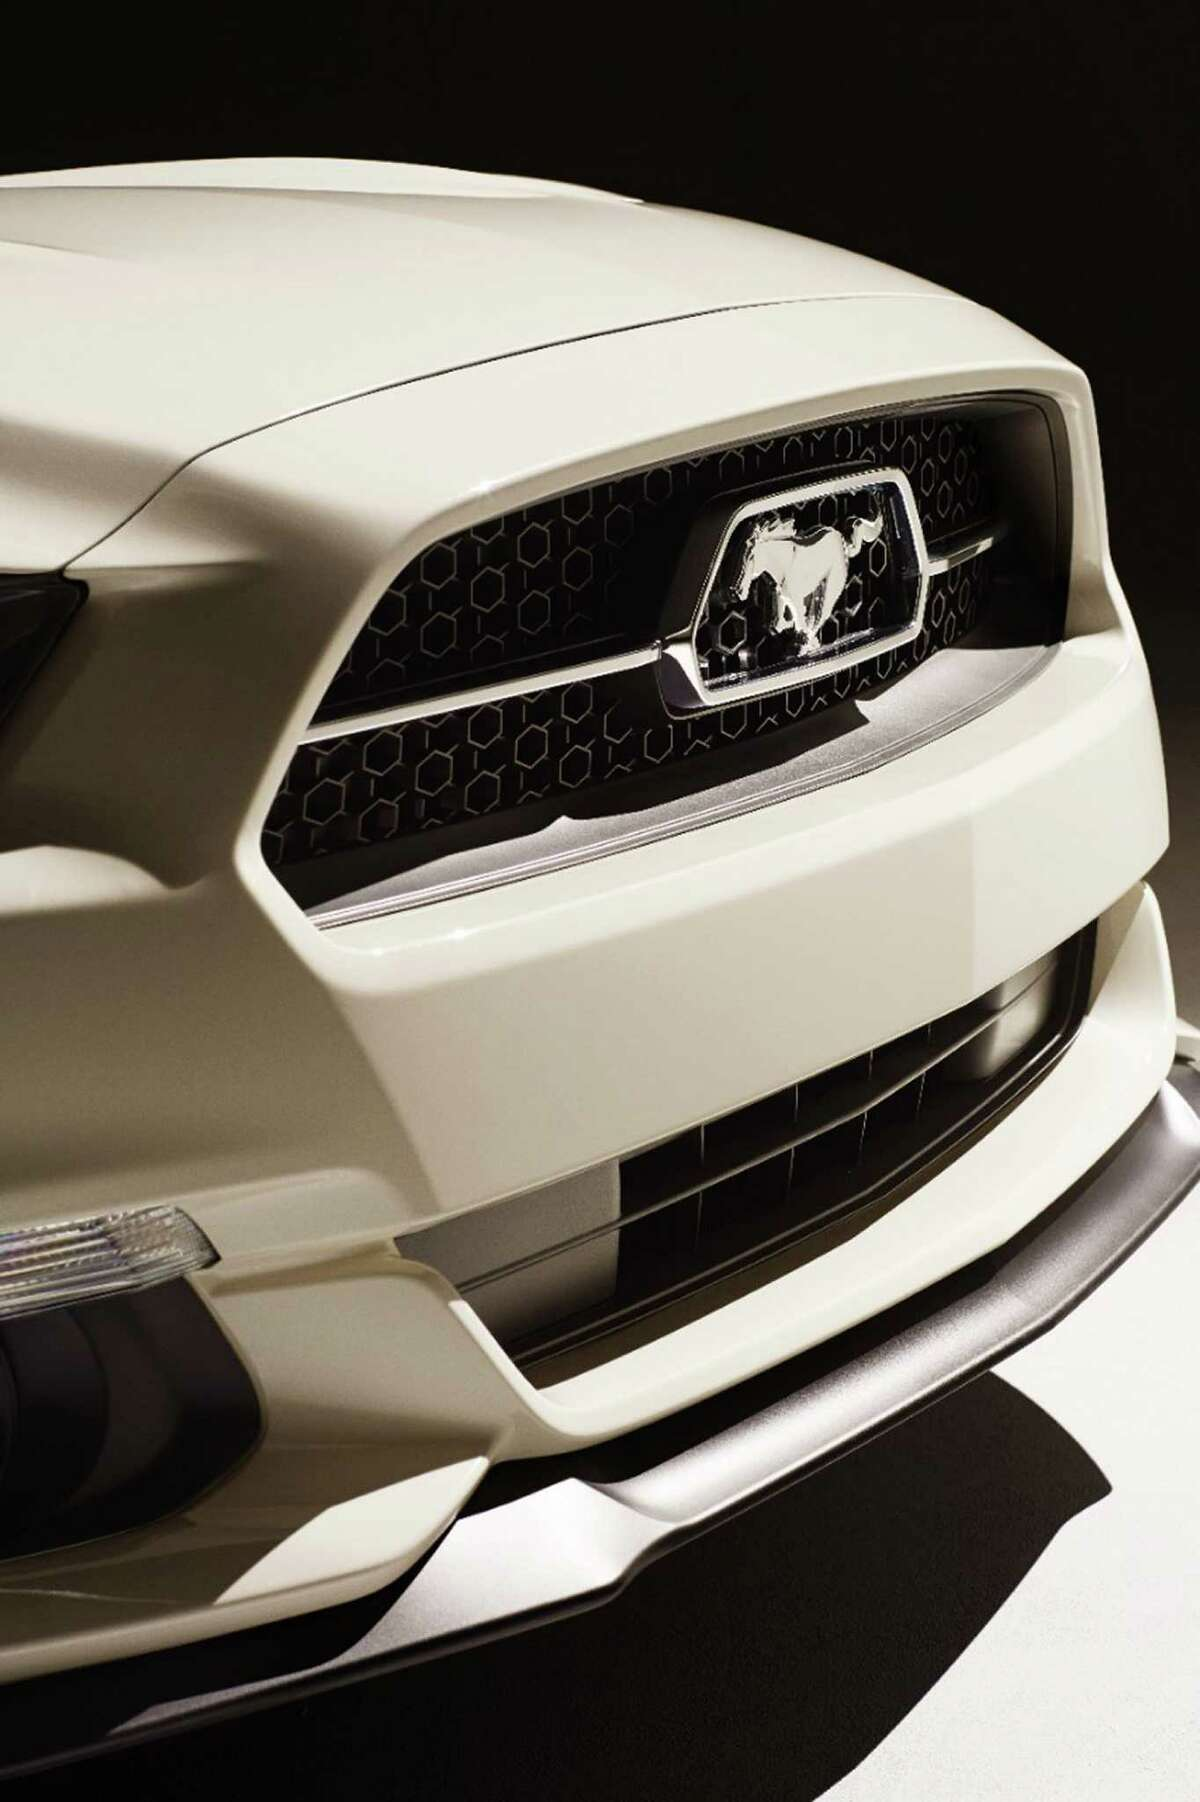 The 2015 50th Anniversary Ford Mustang.